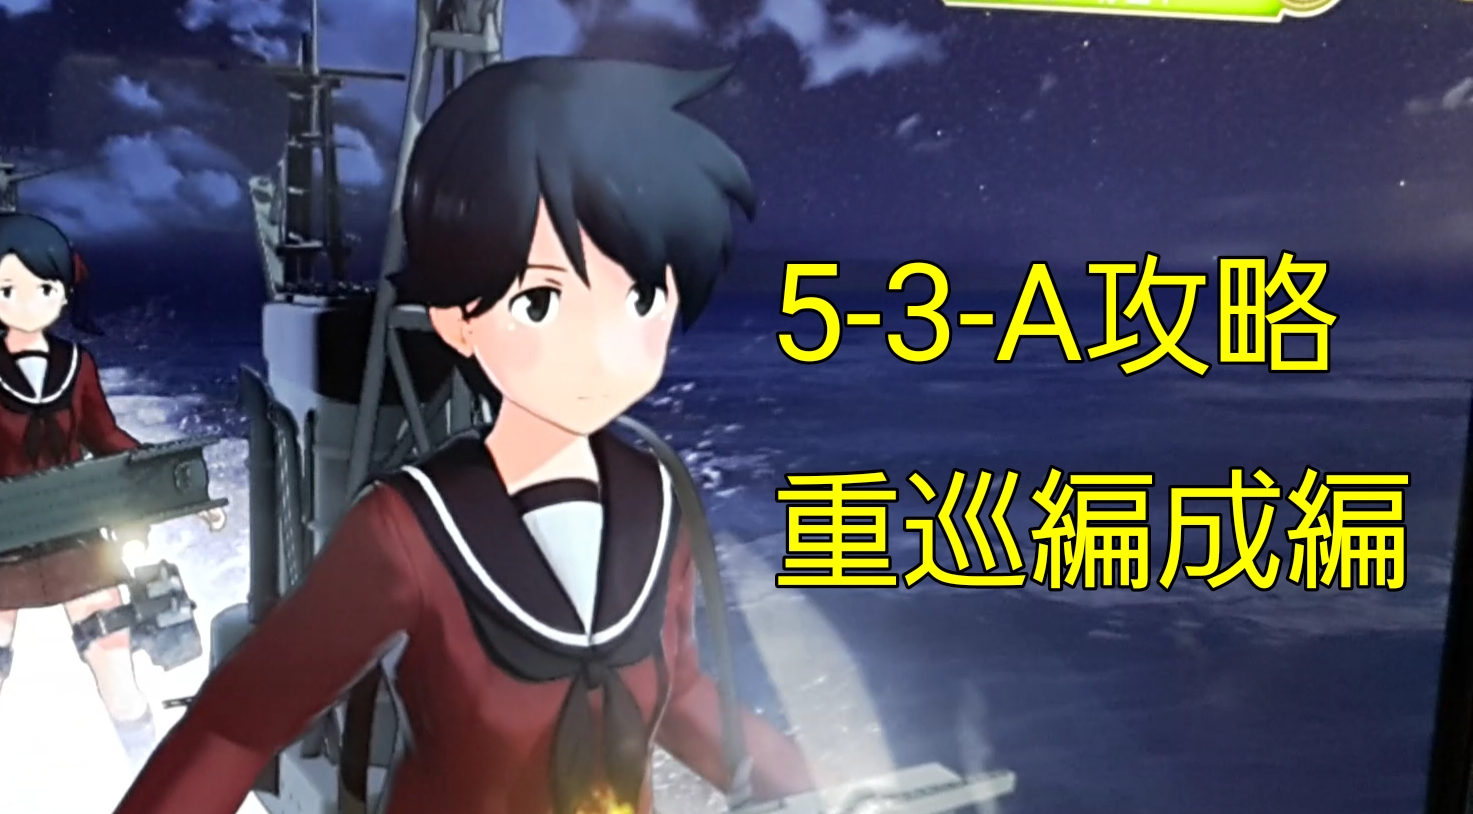 【AC】第一次サーモン沖海戦(5-3-A) 重巡2航巡4 プレイ動画